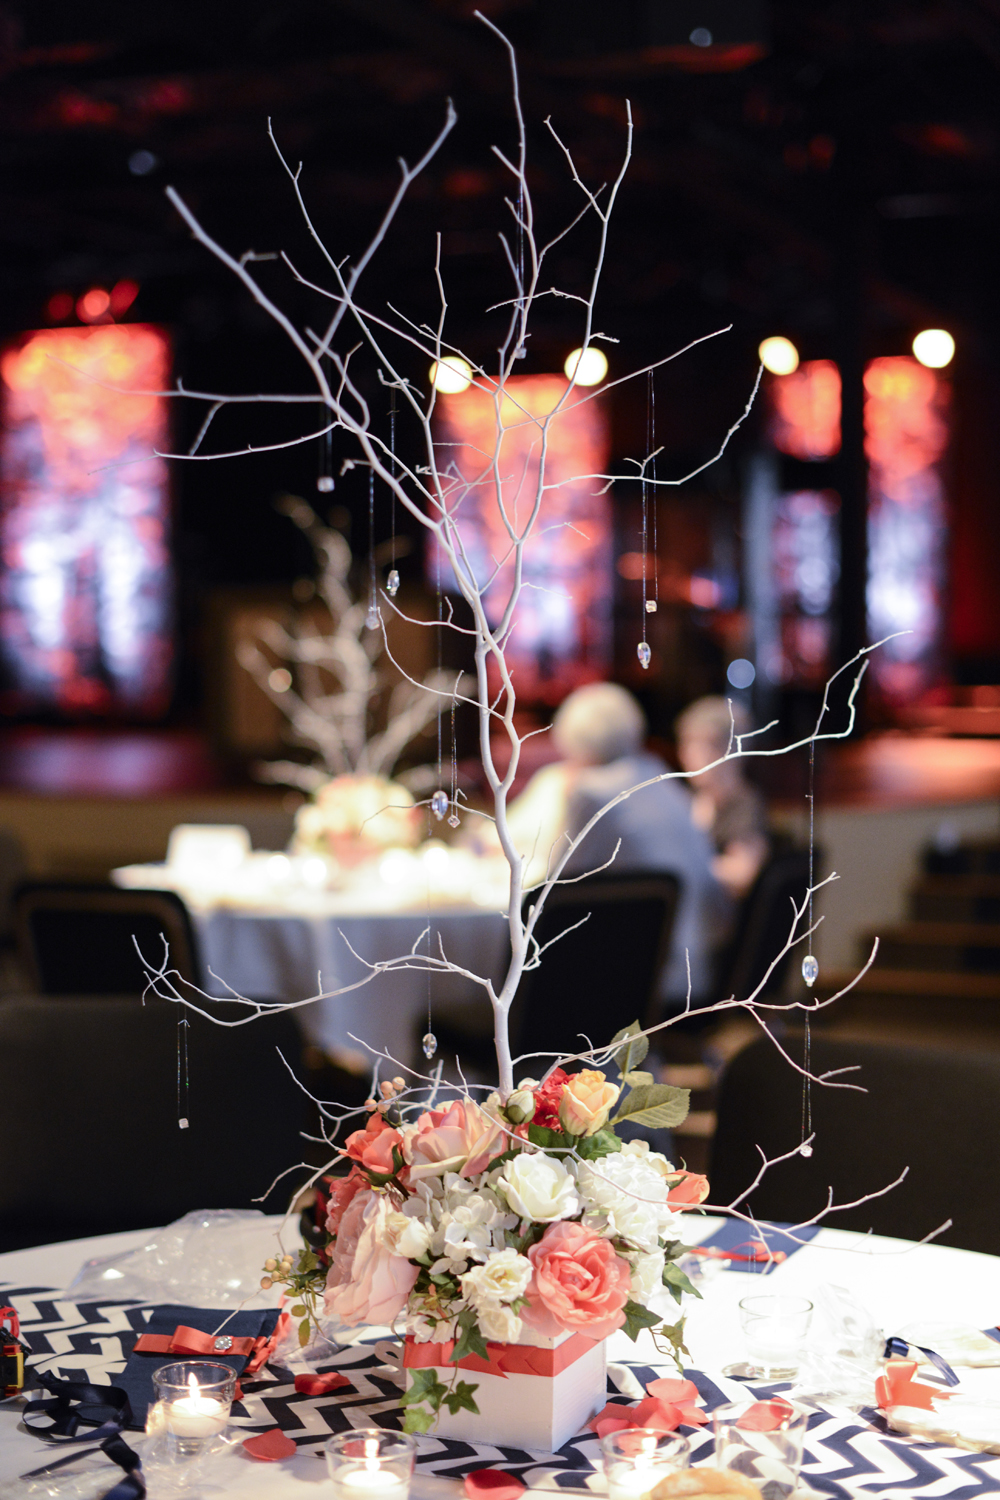 Twig and rose coral pink centerpiece at wedding reception